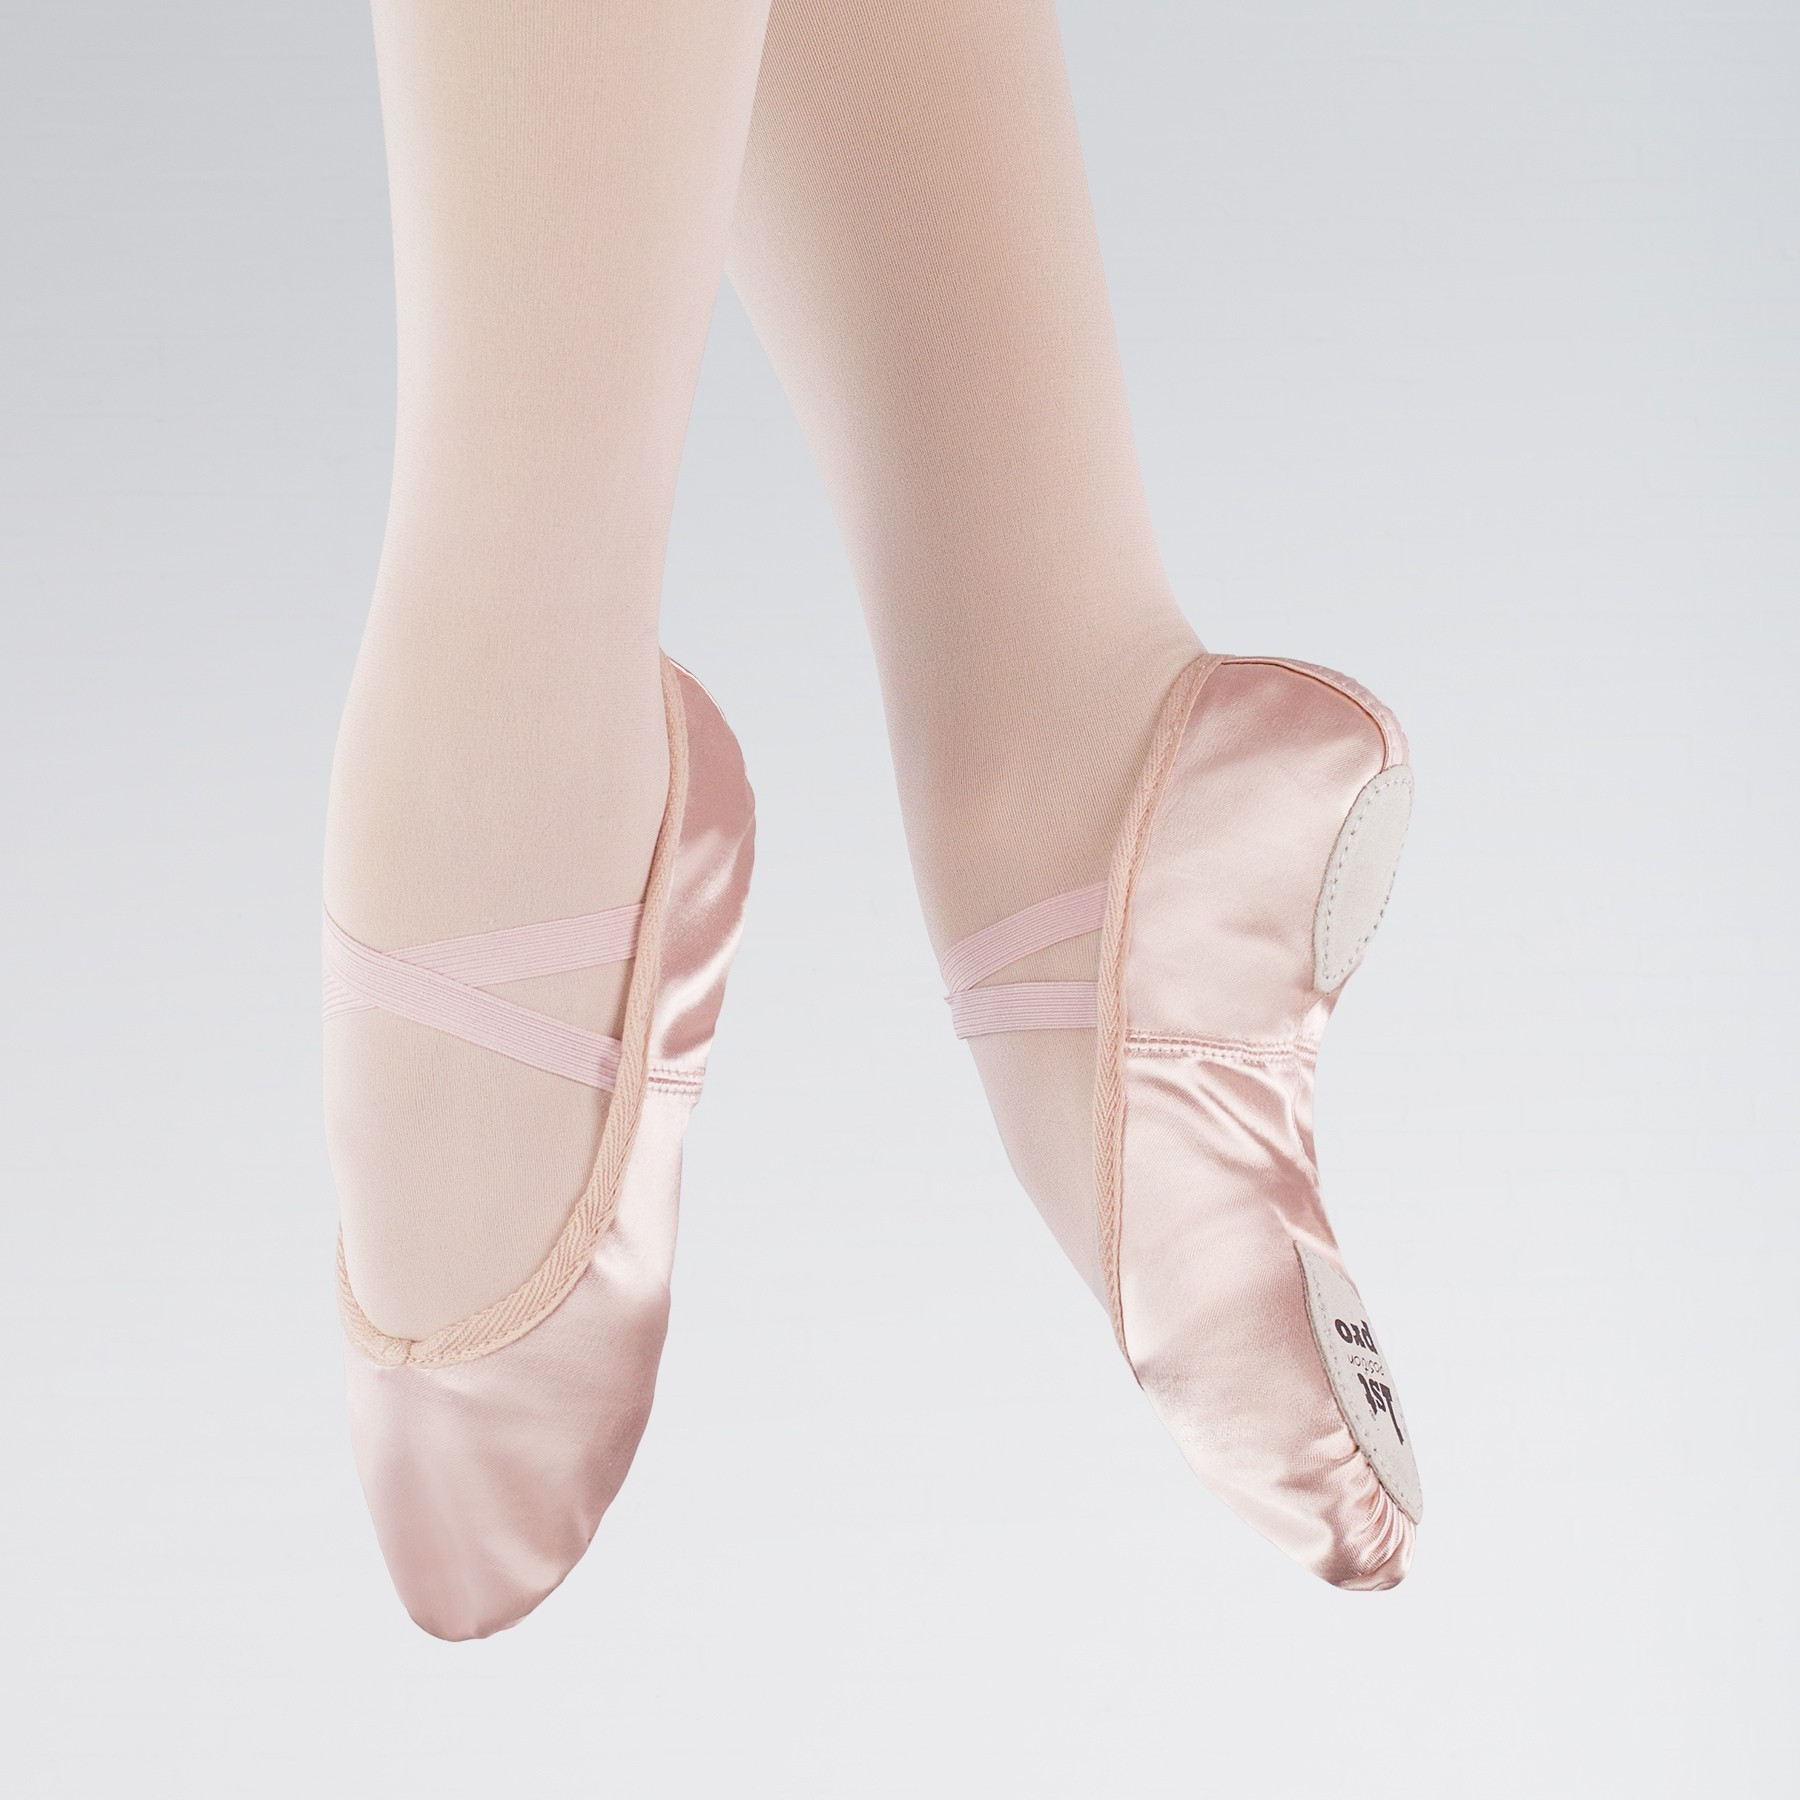 45e9a040a682 1st Position Pink Satin Split Sole Ballet Shoes